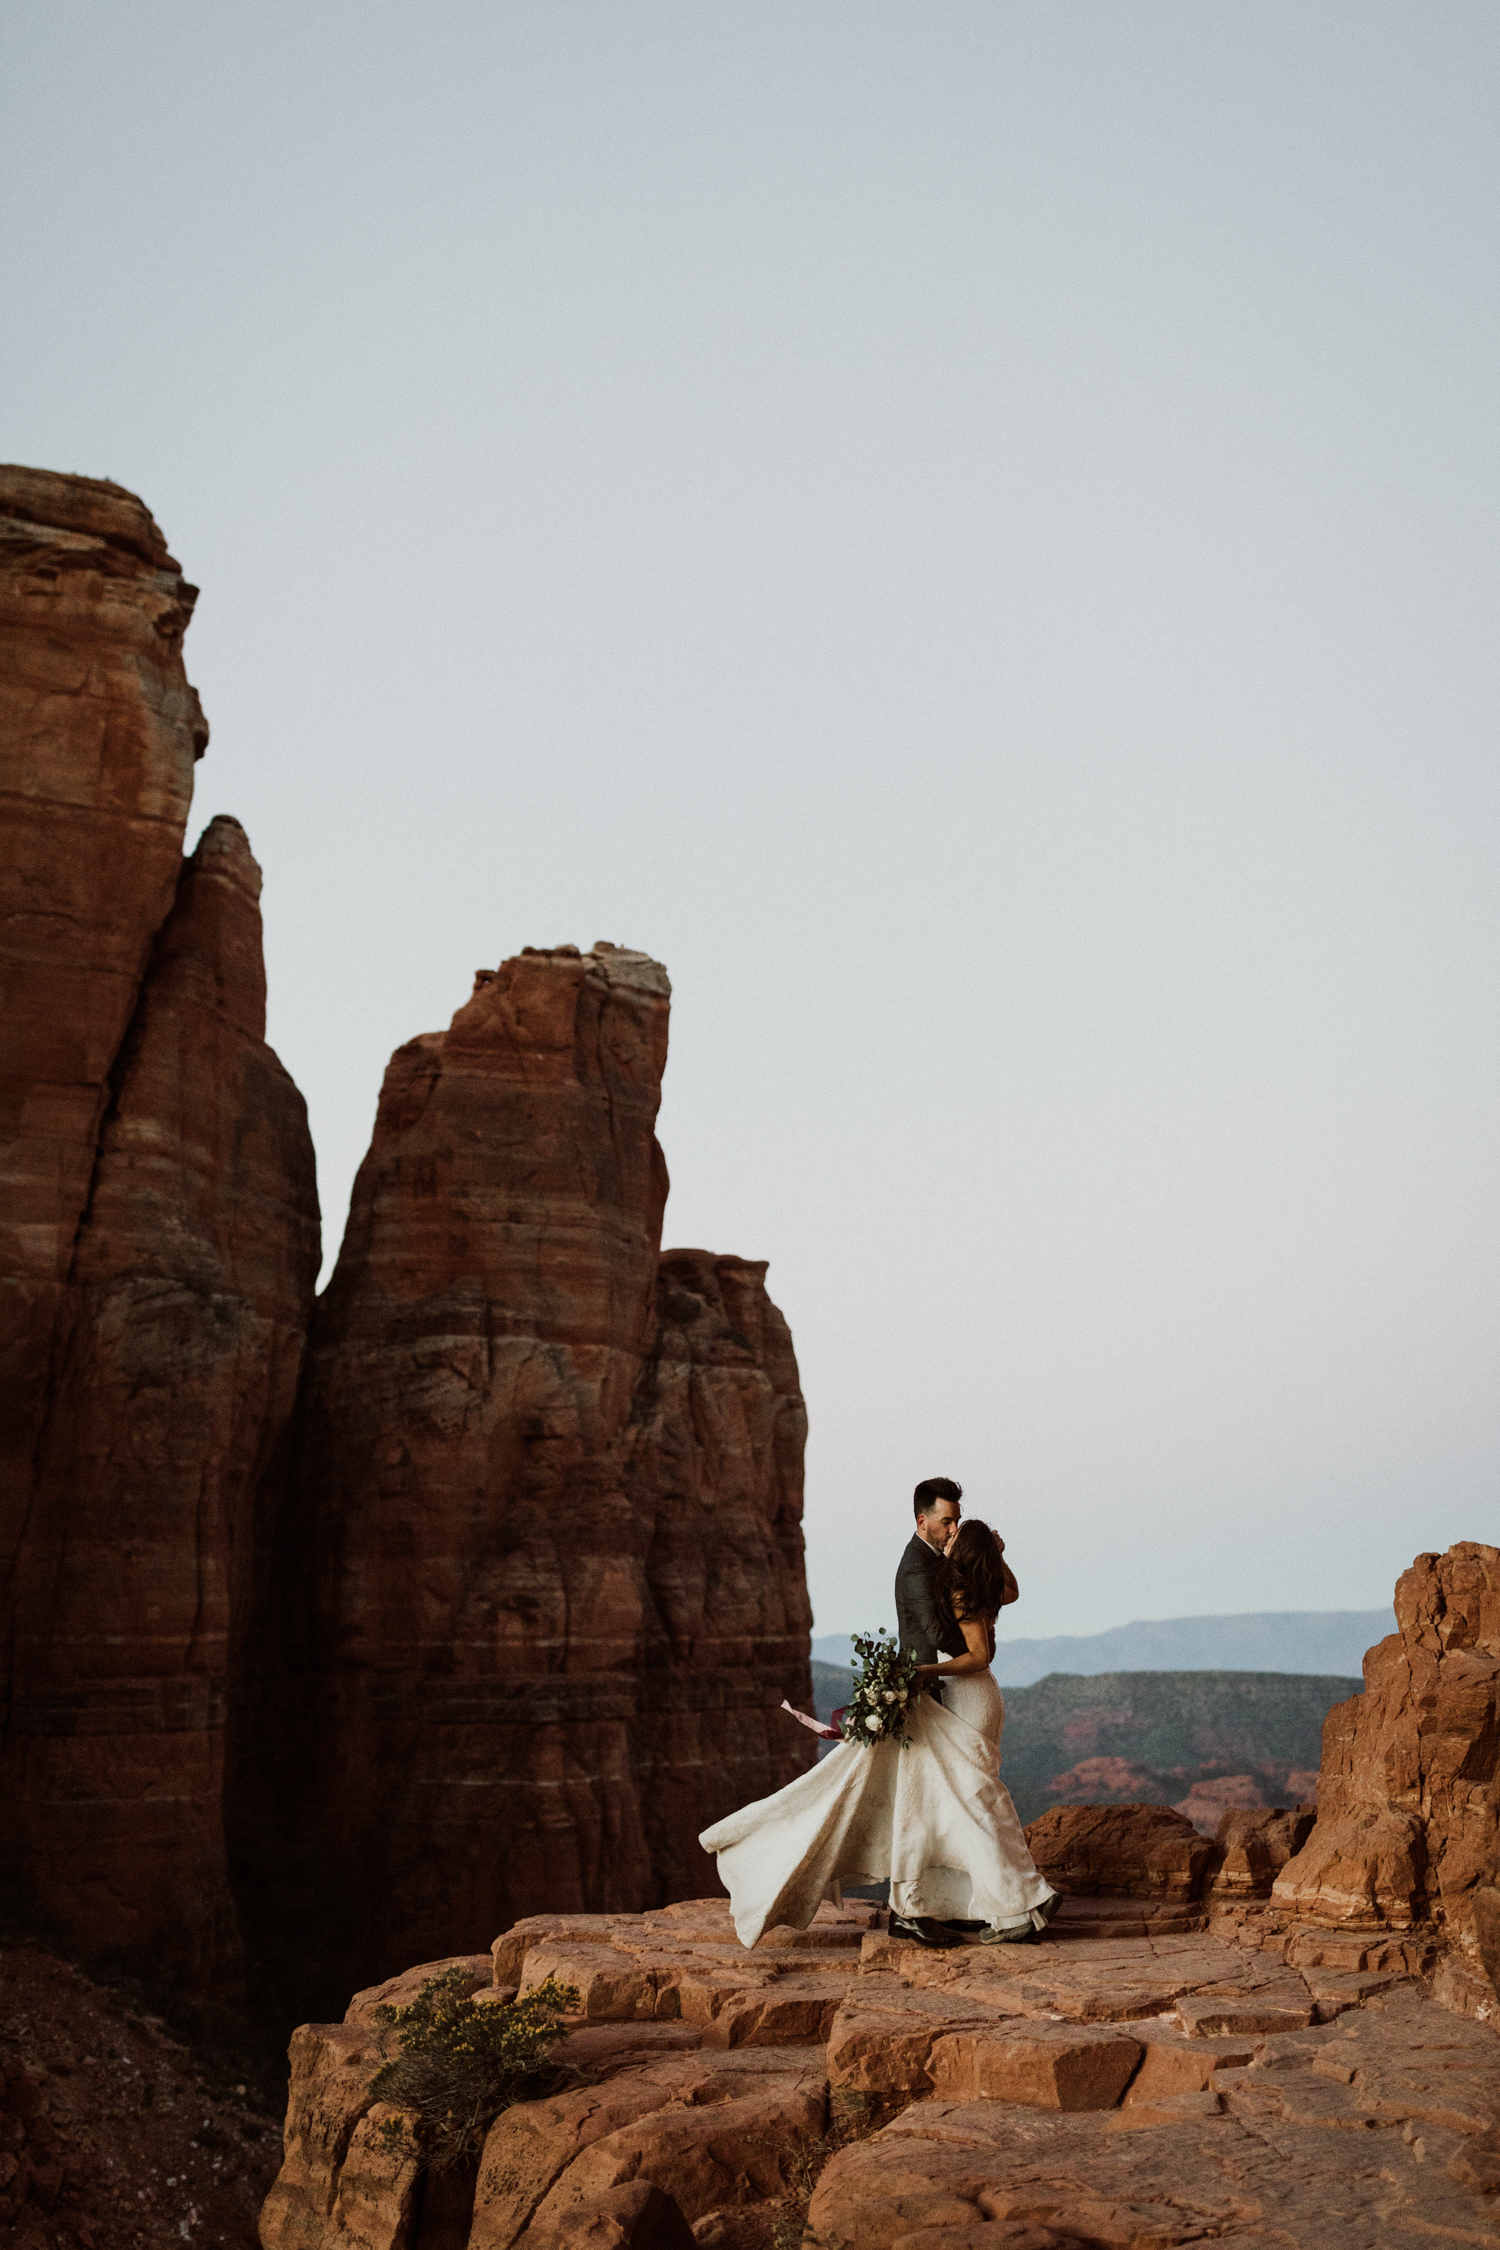 adventure-sedona-arizona-wedding.jpg